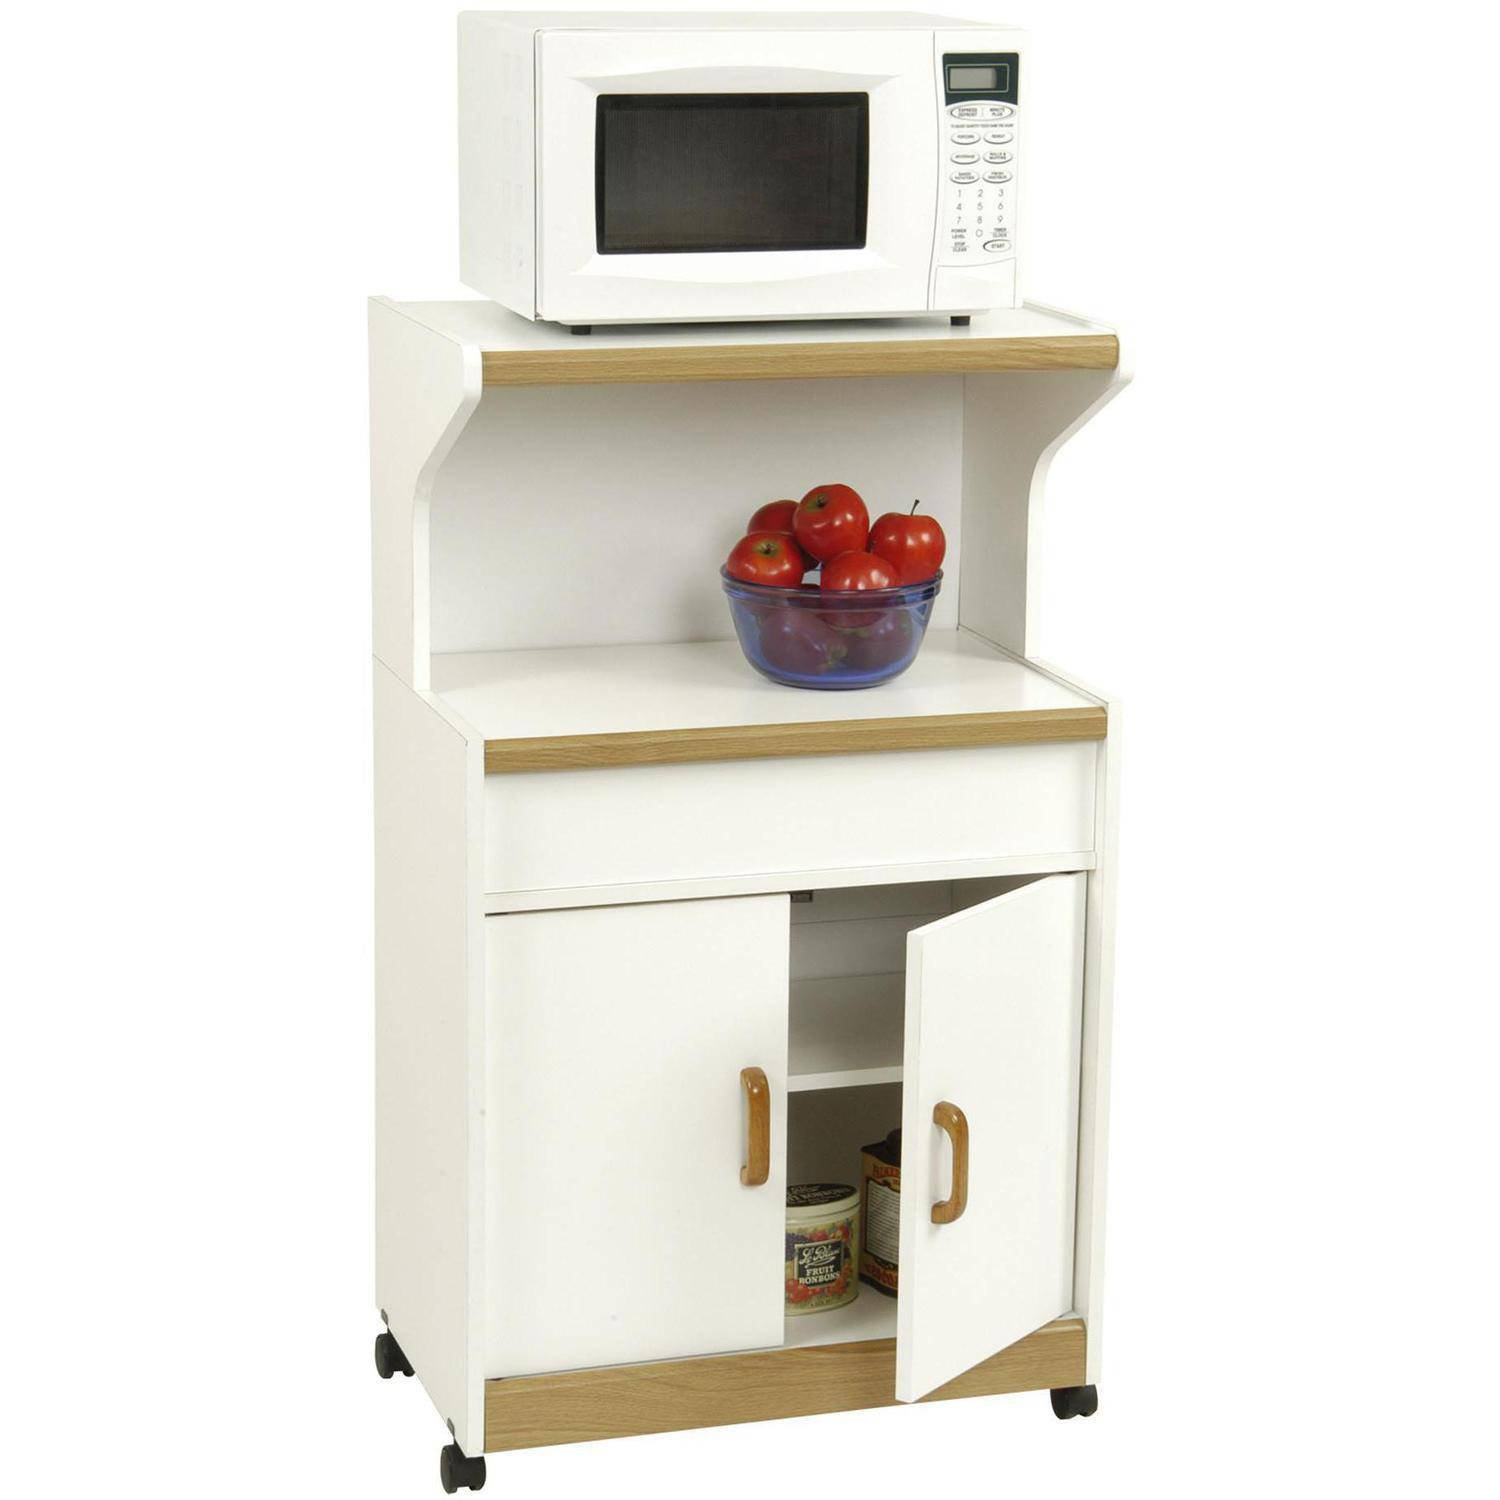 microwave kitchen cart with storage ameriwood 4574gm microwave cart w storage cabinet space in 9161